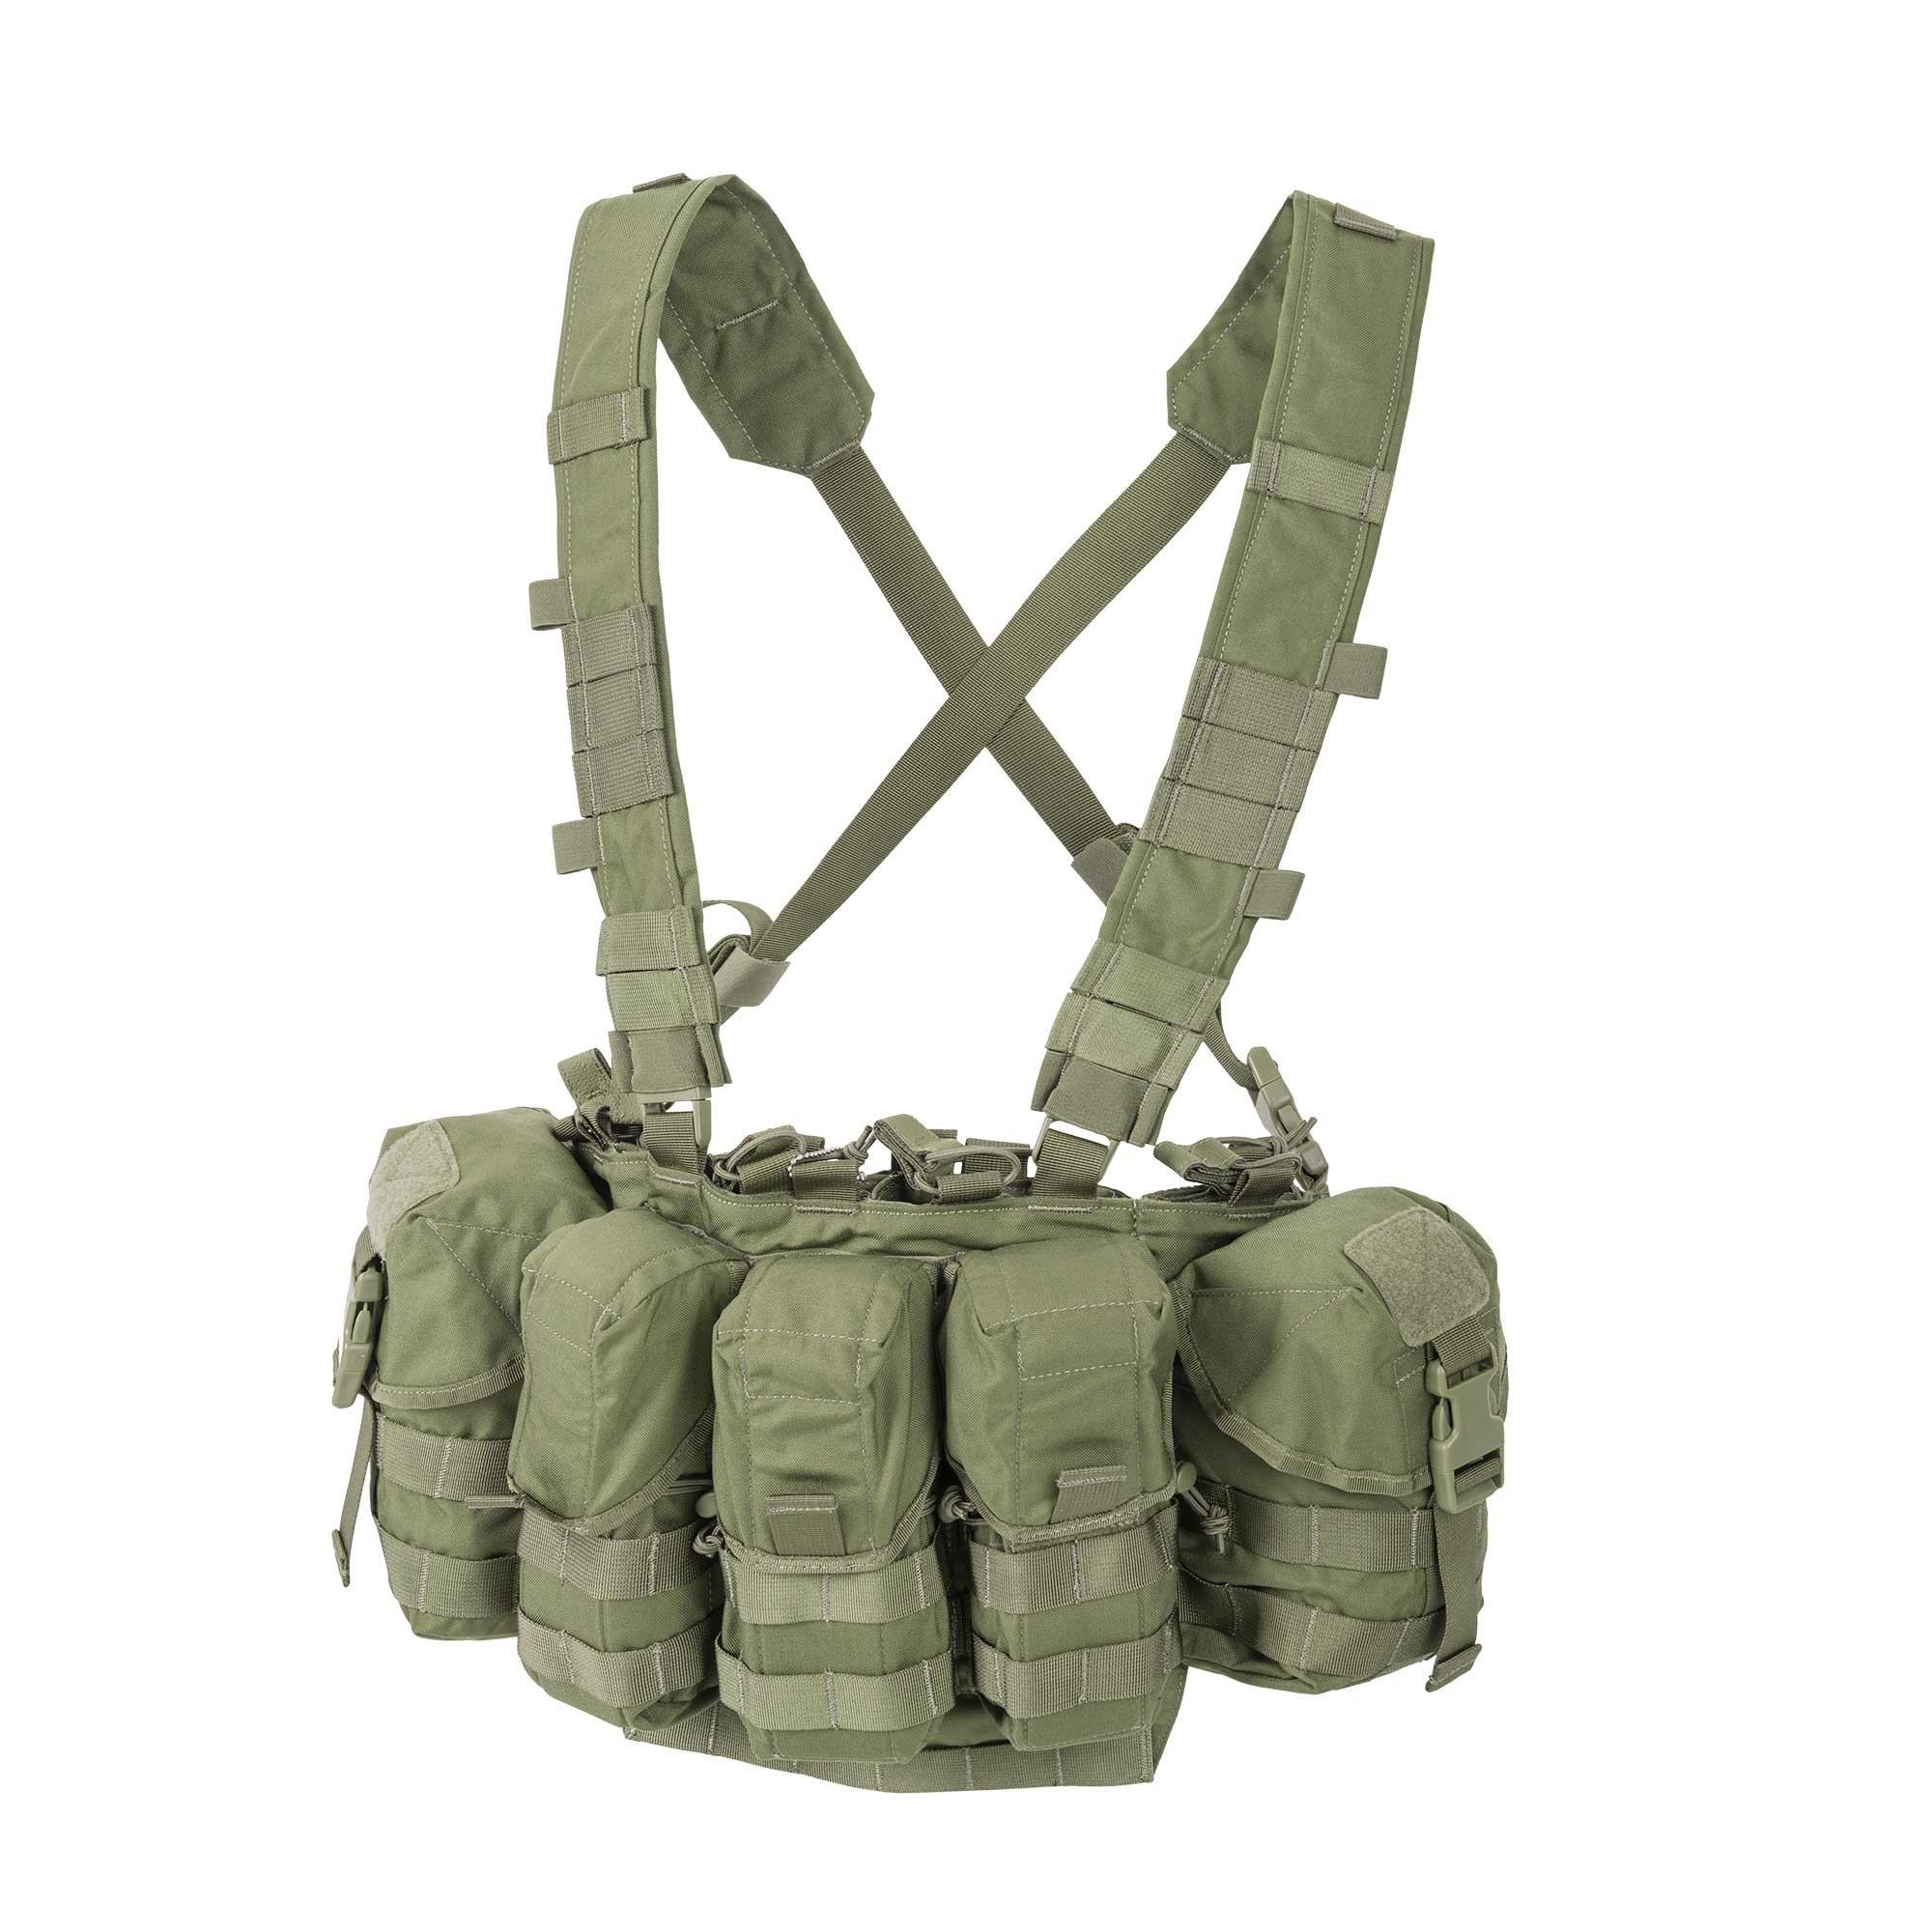 Helikon-Tex Patrol Line, Guardian Chest Rig Olive Green by Helikon-Tex